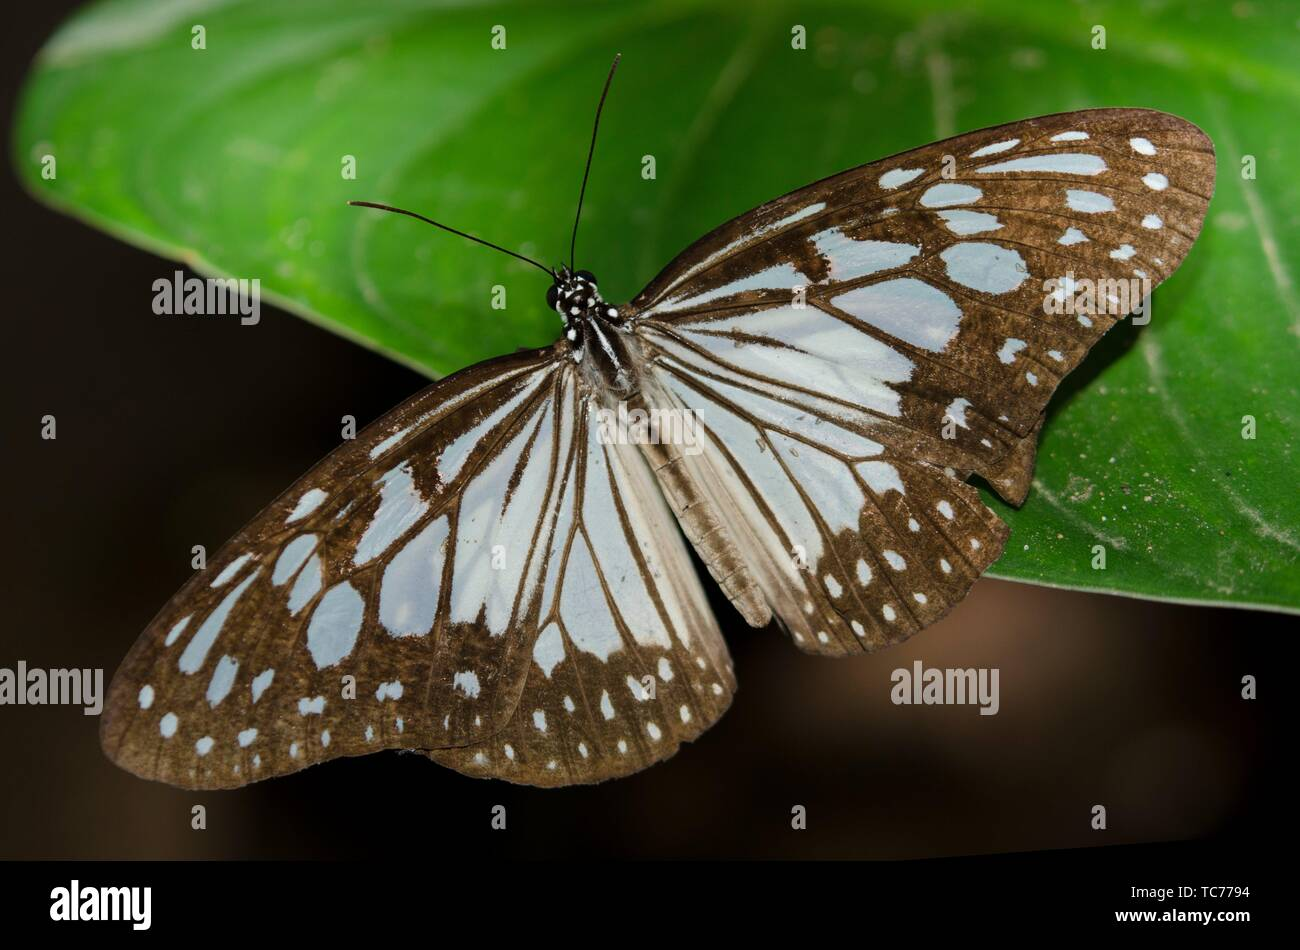 Glassy Tiger Butterfly (Parantica aglea, Nymphalidae Family) on leaf, Klungkung, Bali, Indonesia. - Stock Image